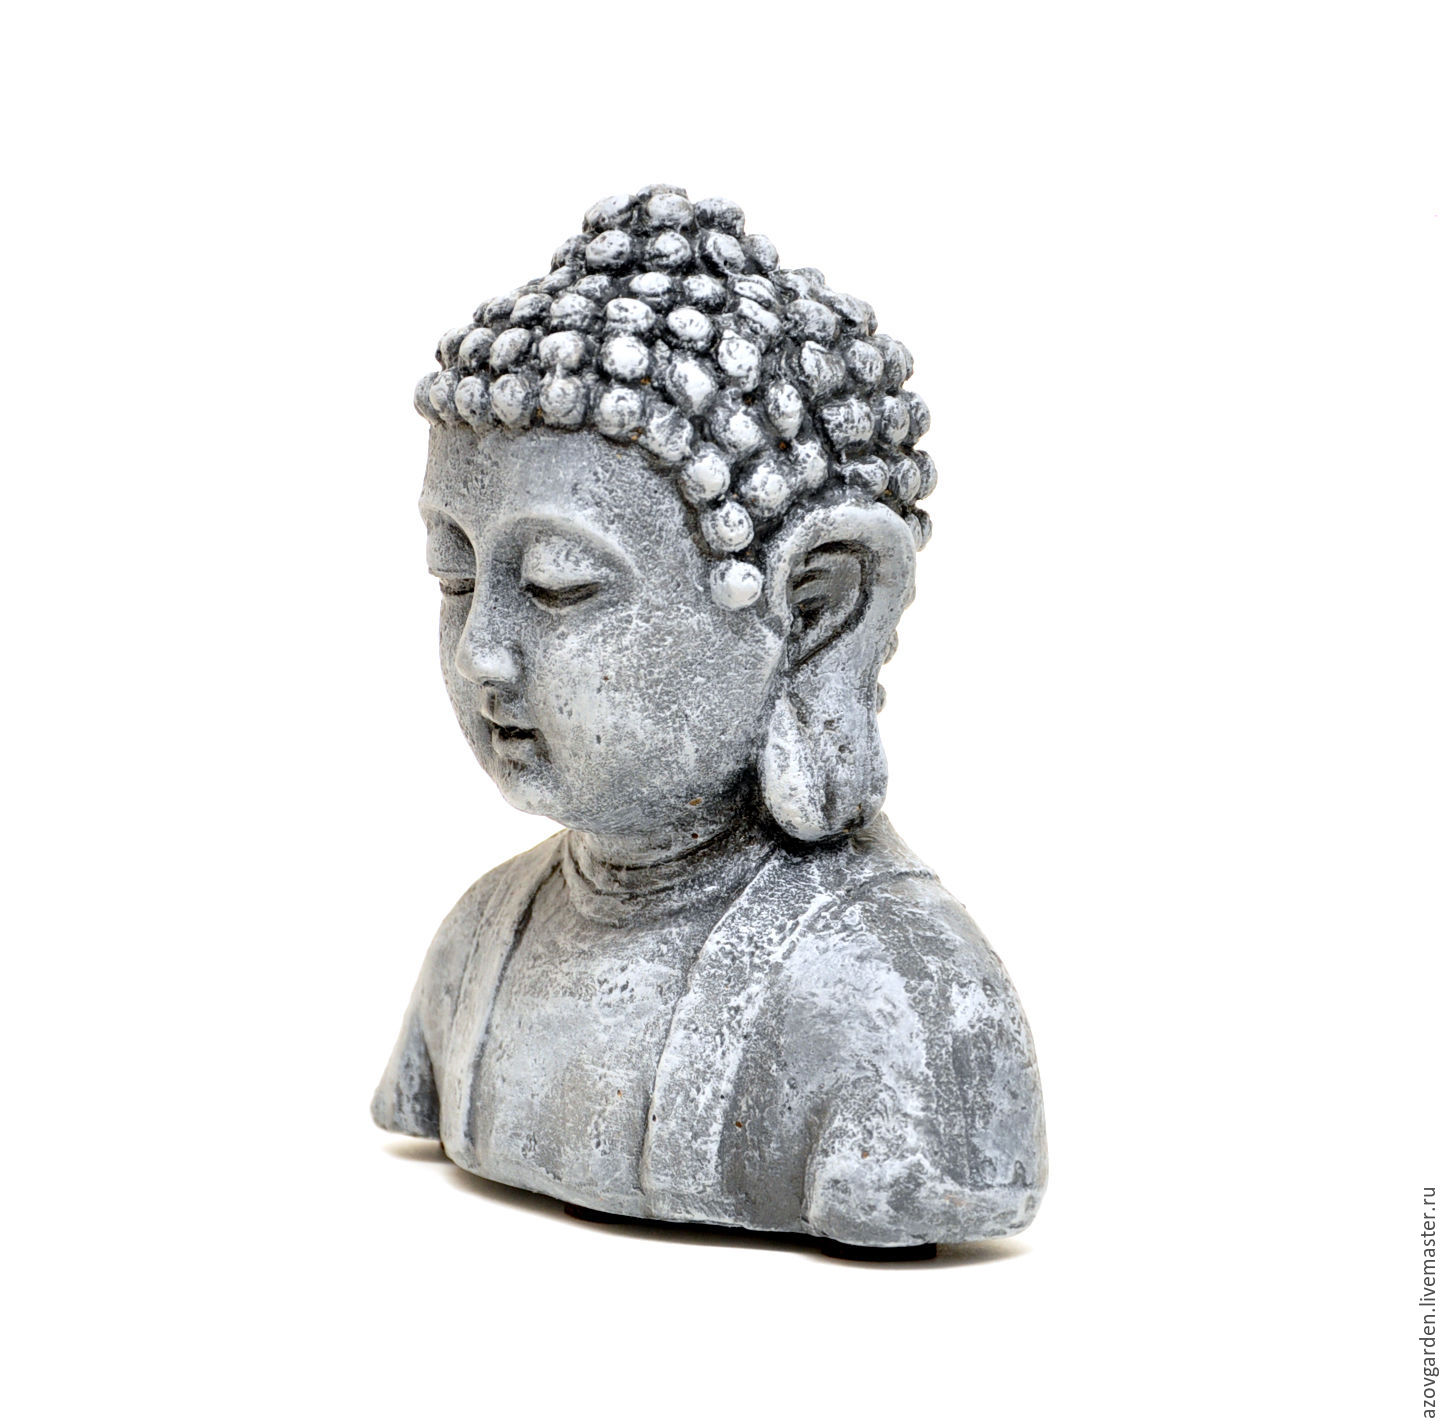 buy concrete bust of buddha for home decor and garden - grey, brown